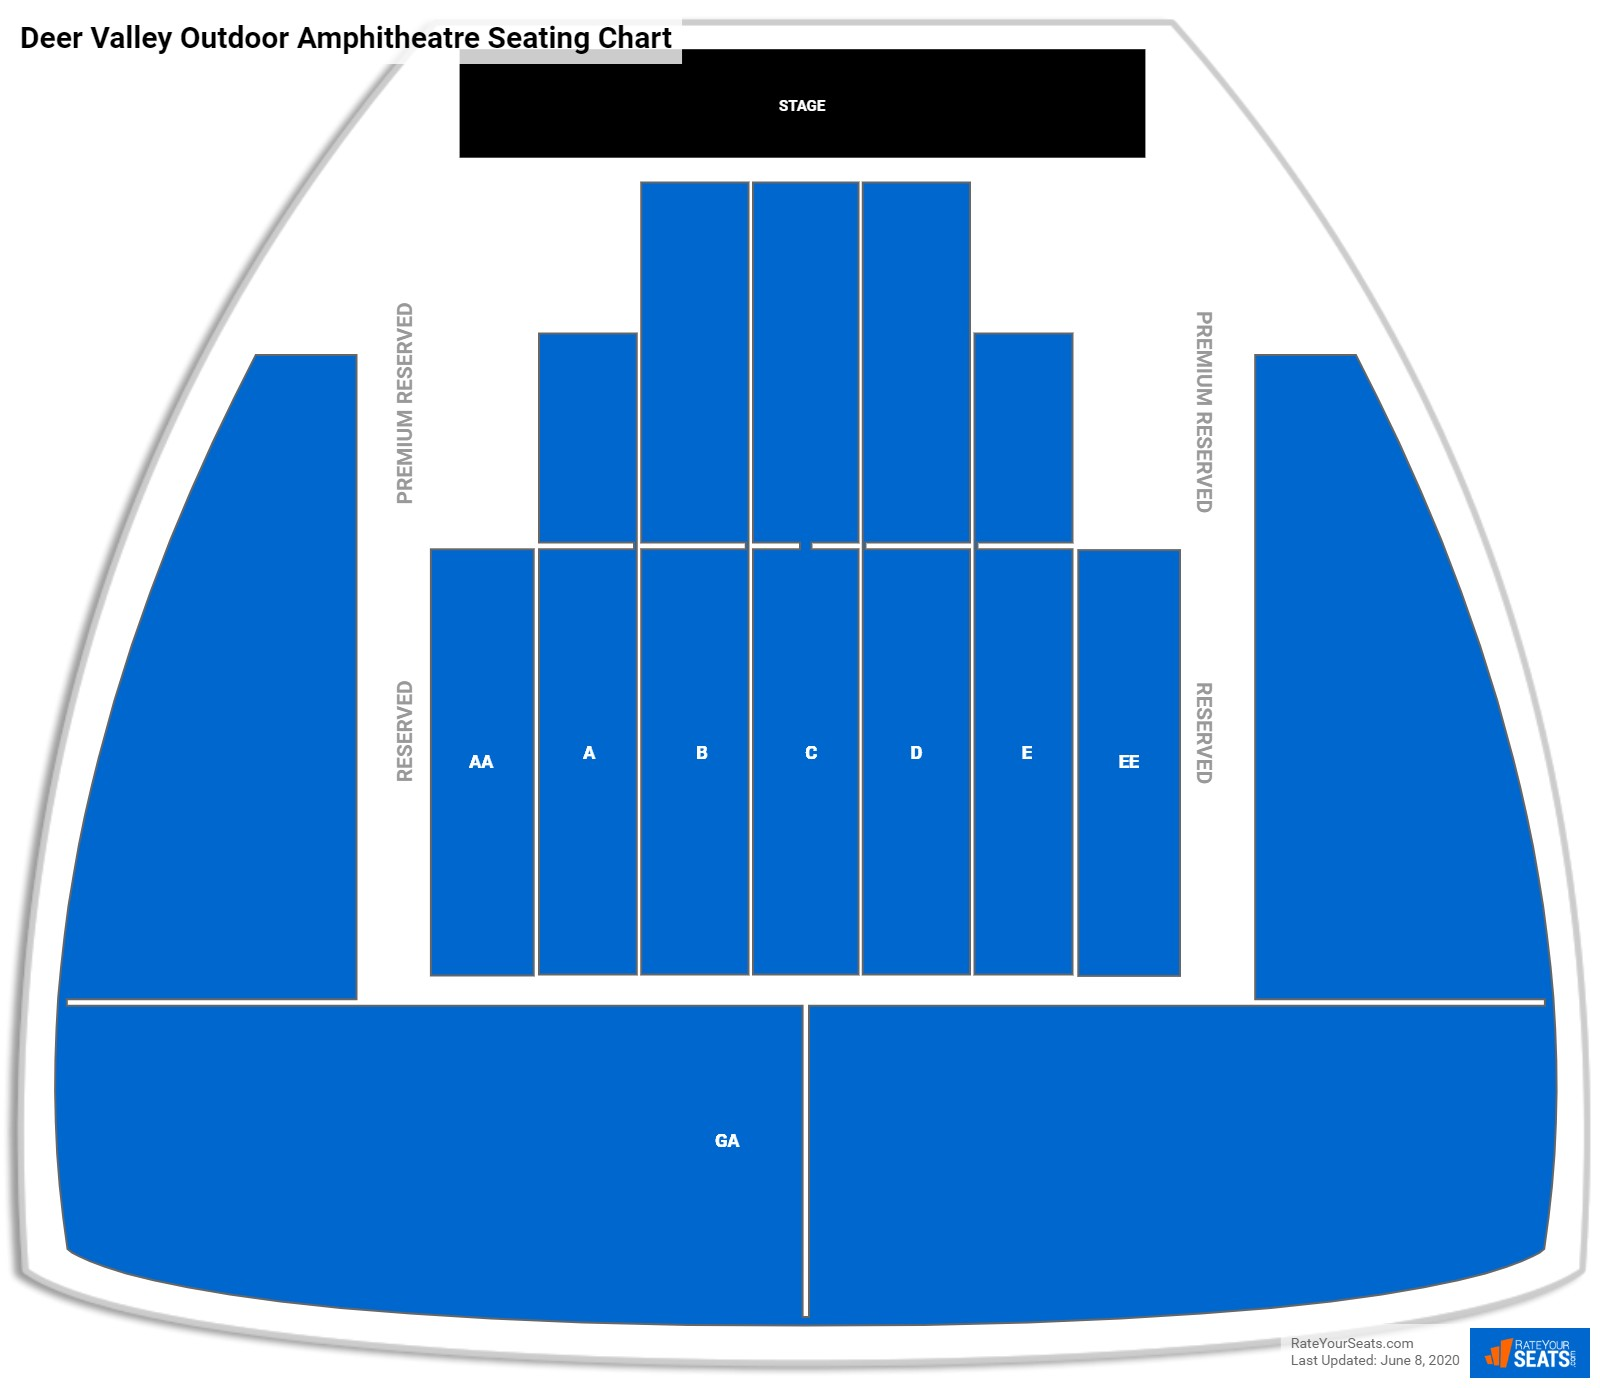 Deer Valley Outdoor Amphitheatre Seating Chart